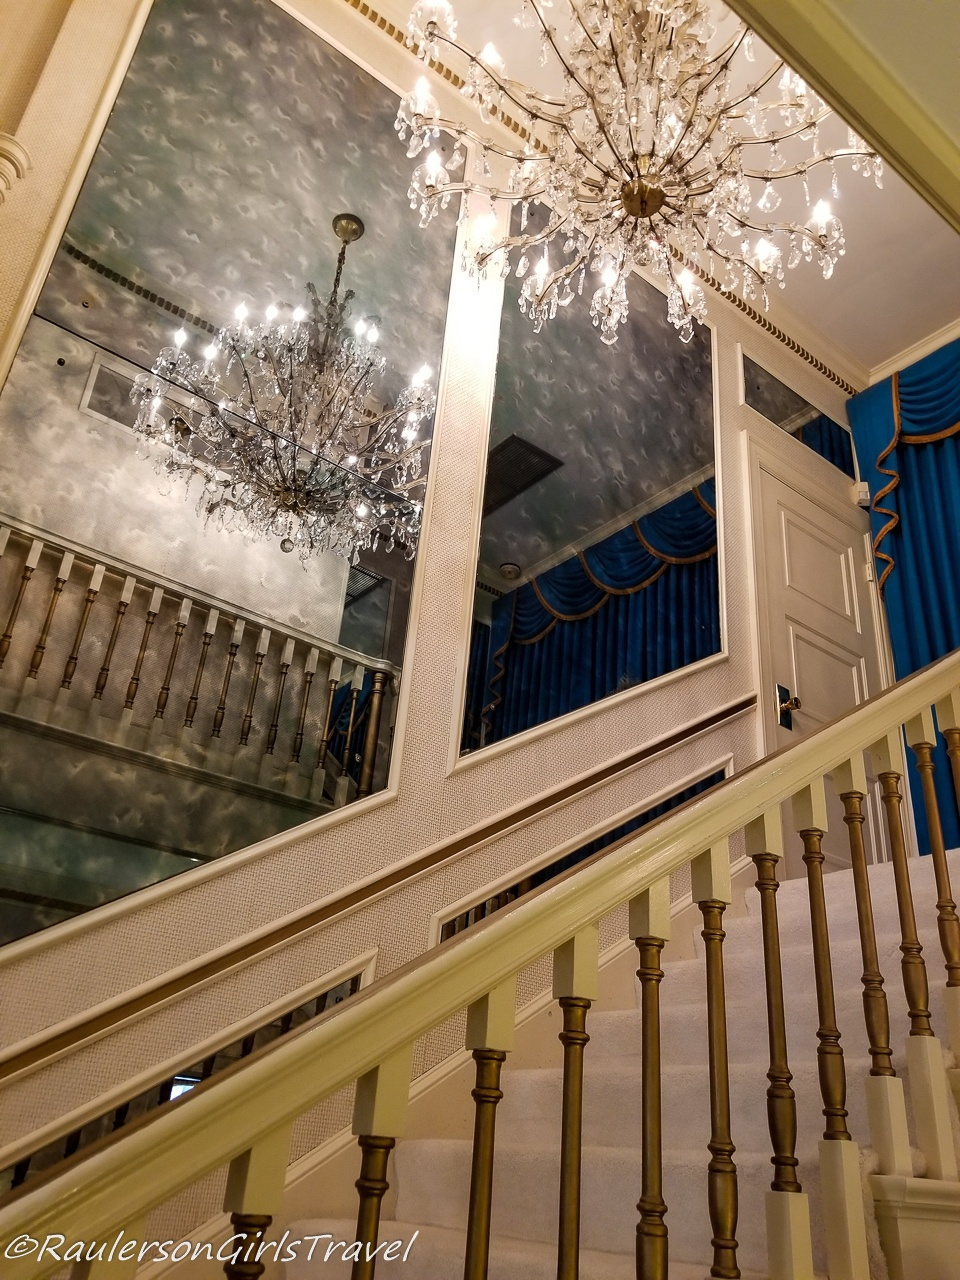 Chandelier and Staircase at Graceland